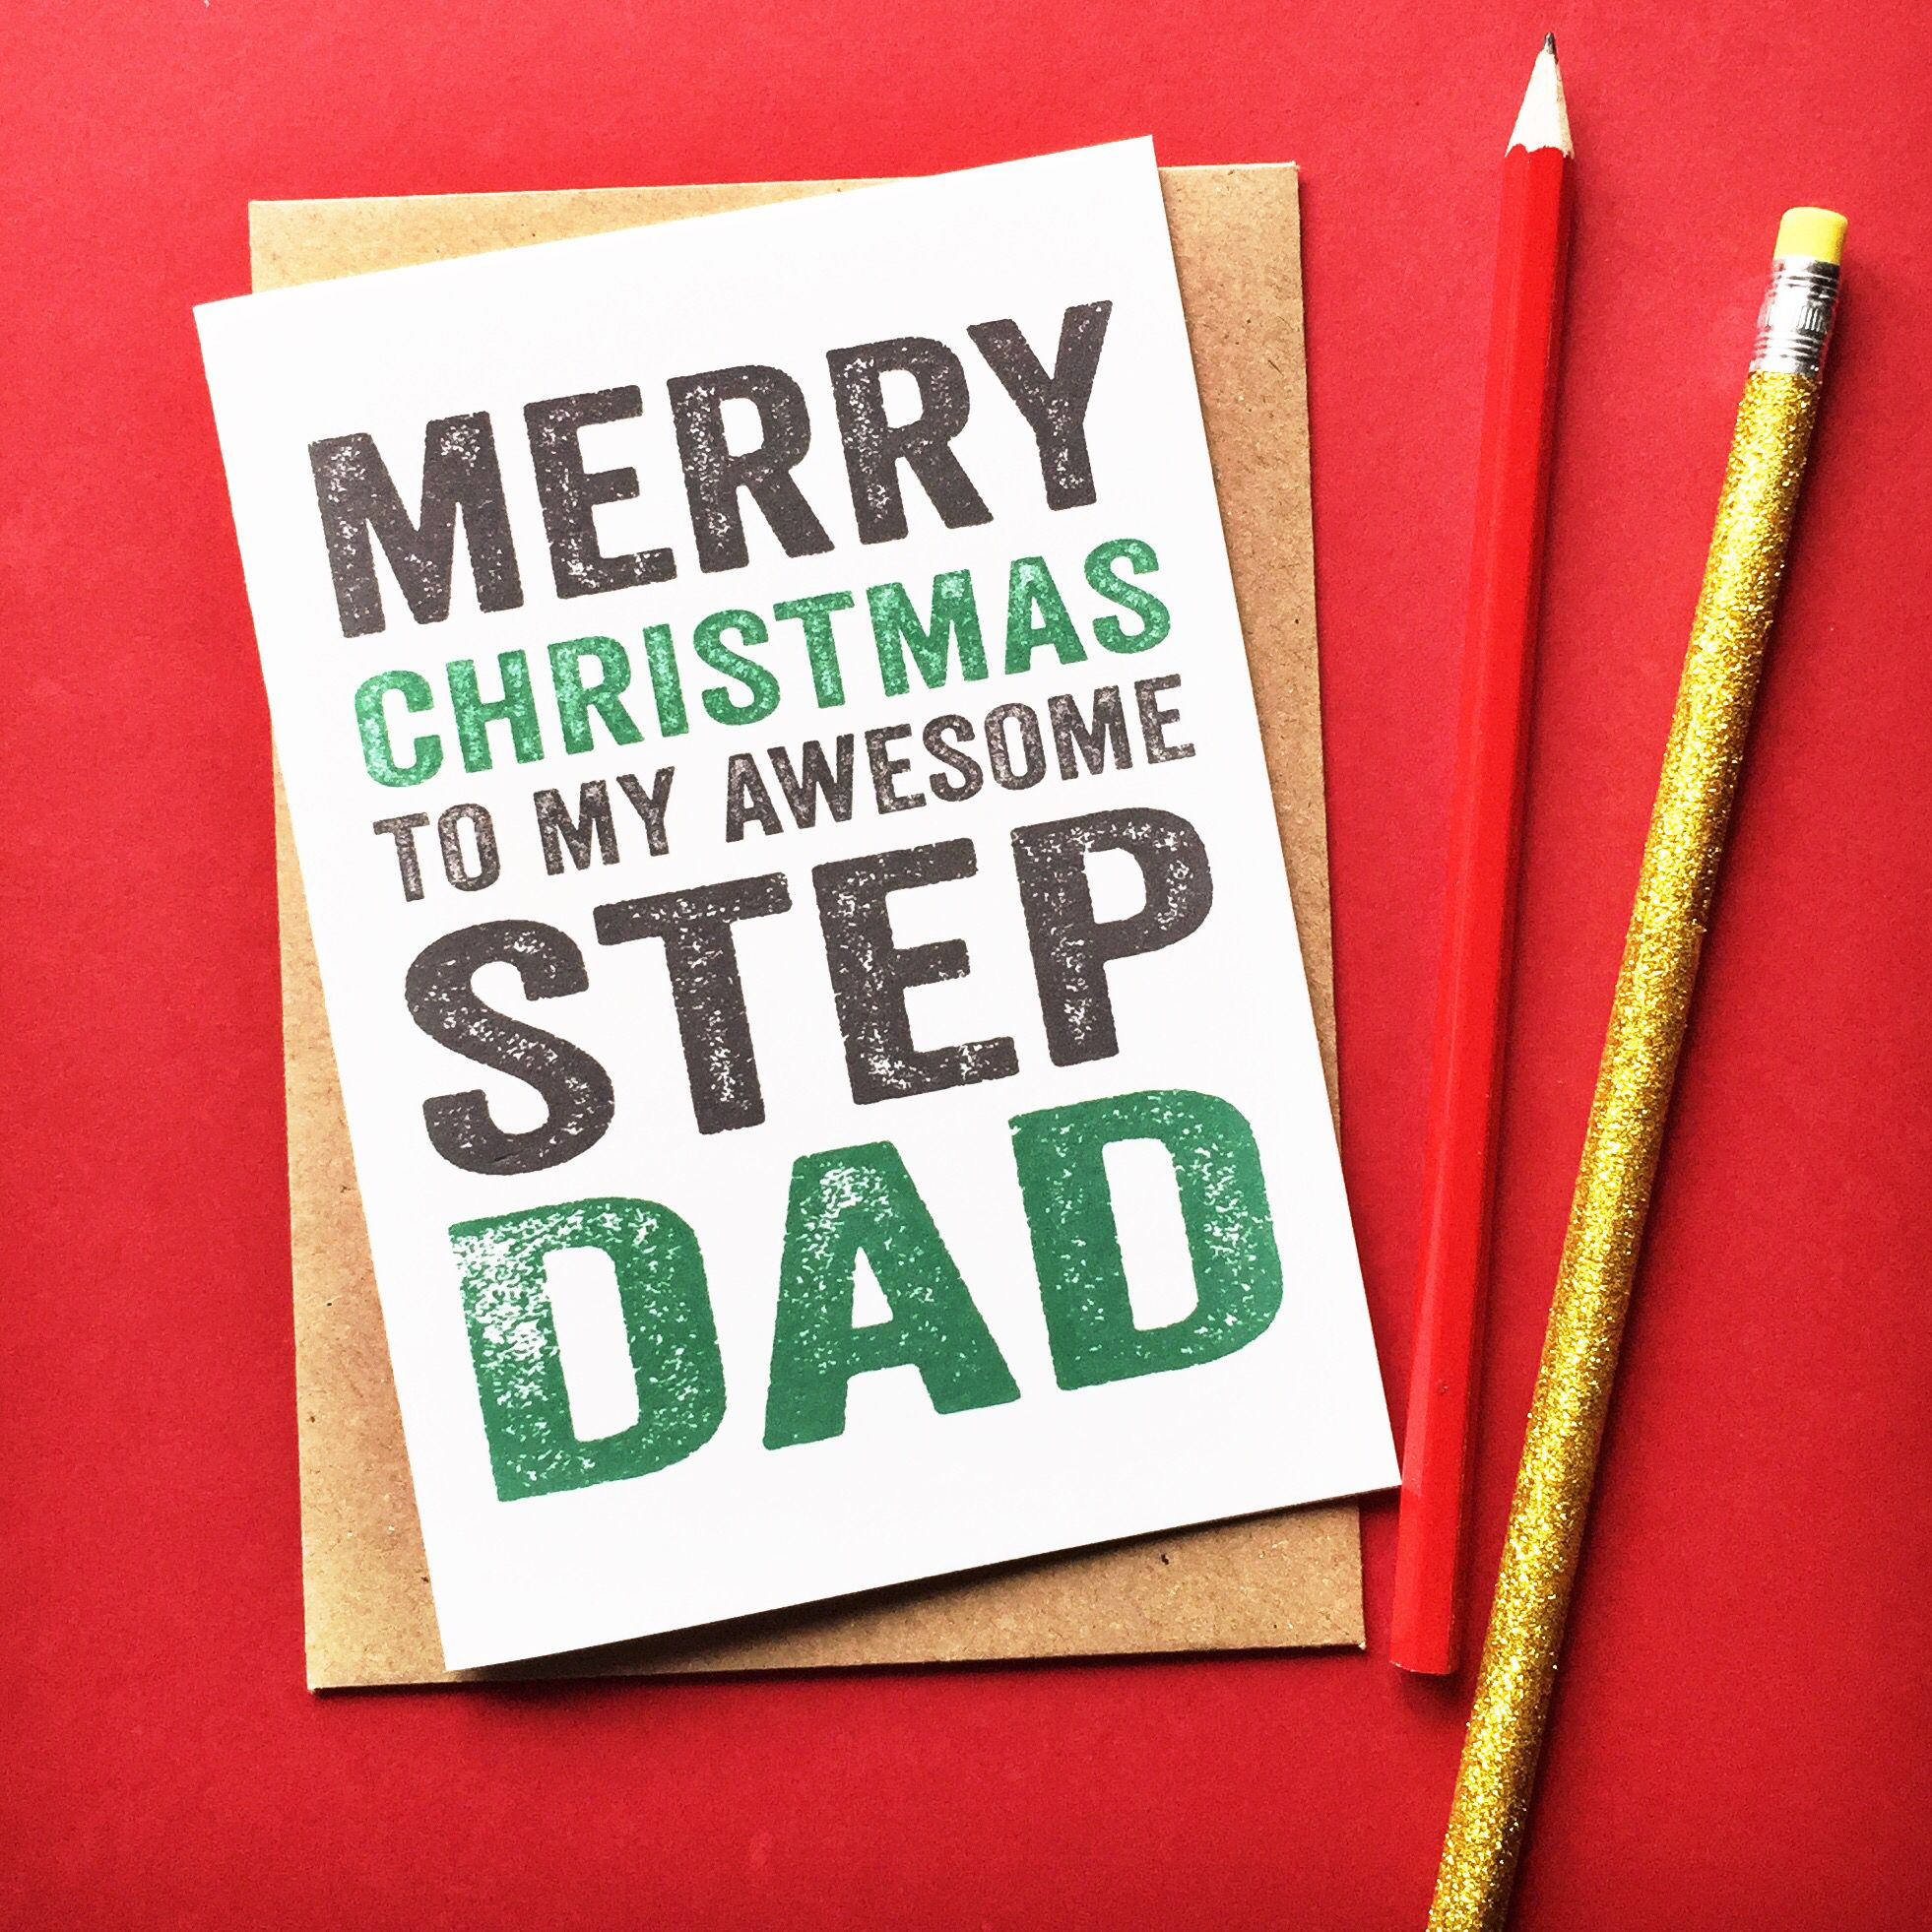 Merry Christmas Step Dad, have this card personalised with their name too!   http://shop.doyoupunctuate.com/collections/christmas-new-year/products/merry-christmas-step-dad-greetings-card